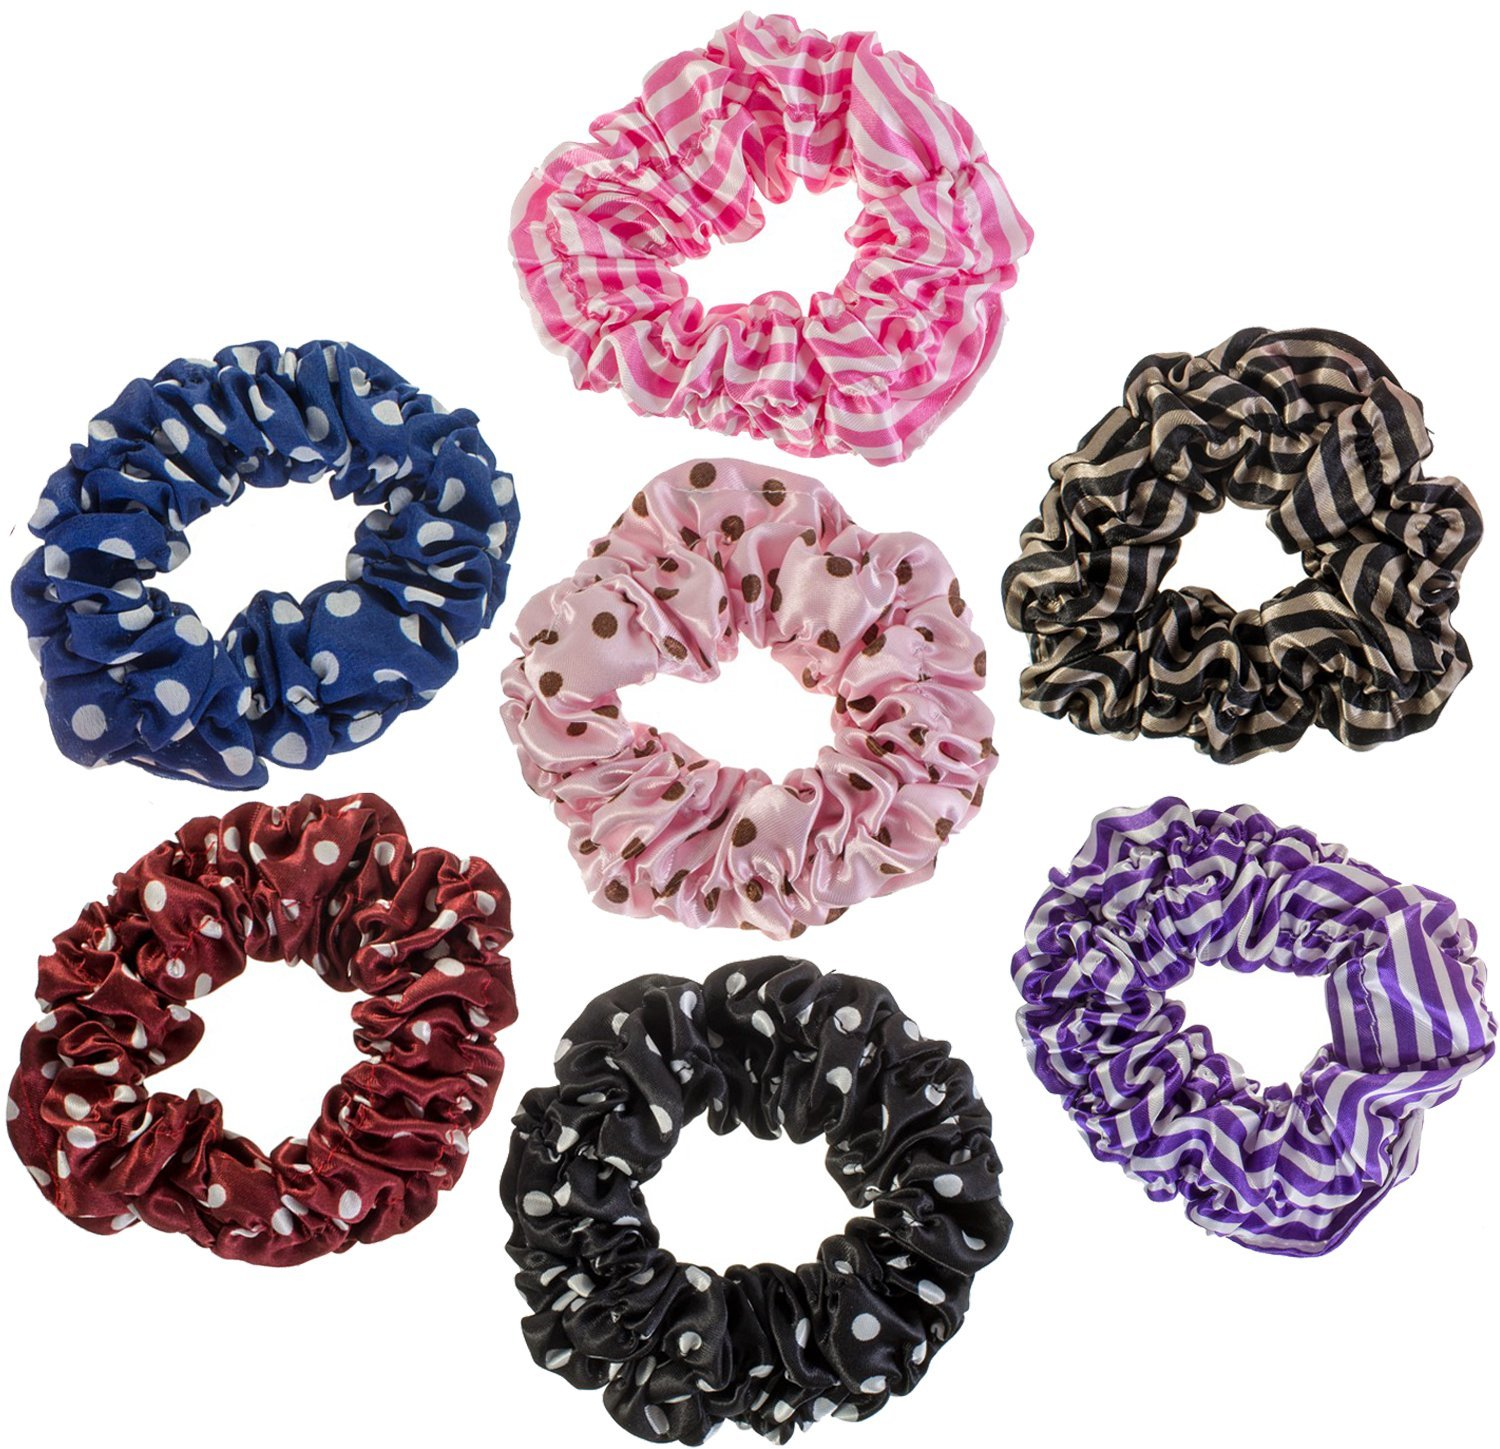 Hairstyling Accessories and Decorations Set   Kit   Lot of 7pcs Hair  Scrunchies   Rubber Bands 534e732f1ff